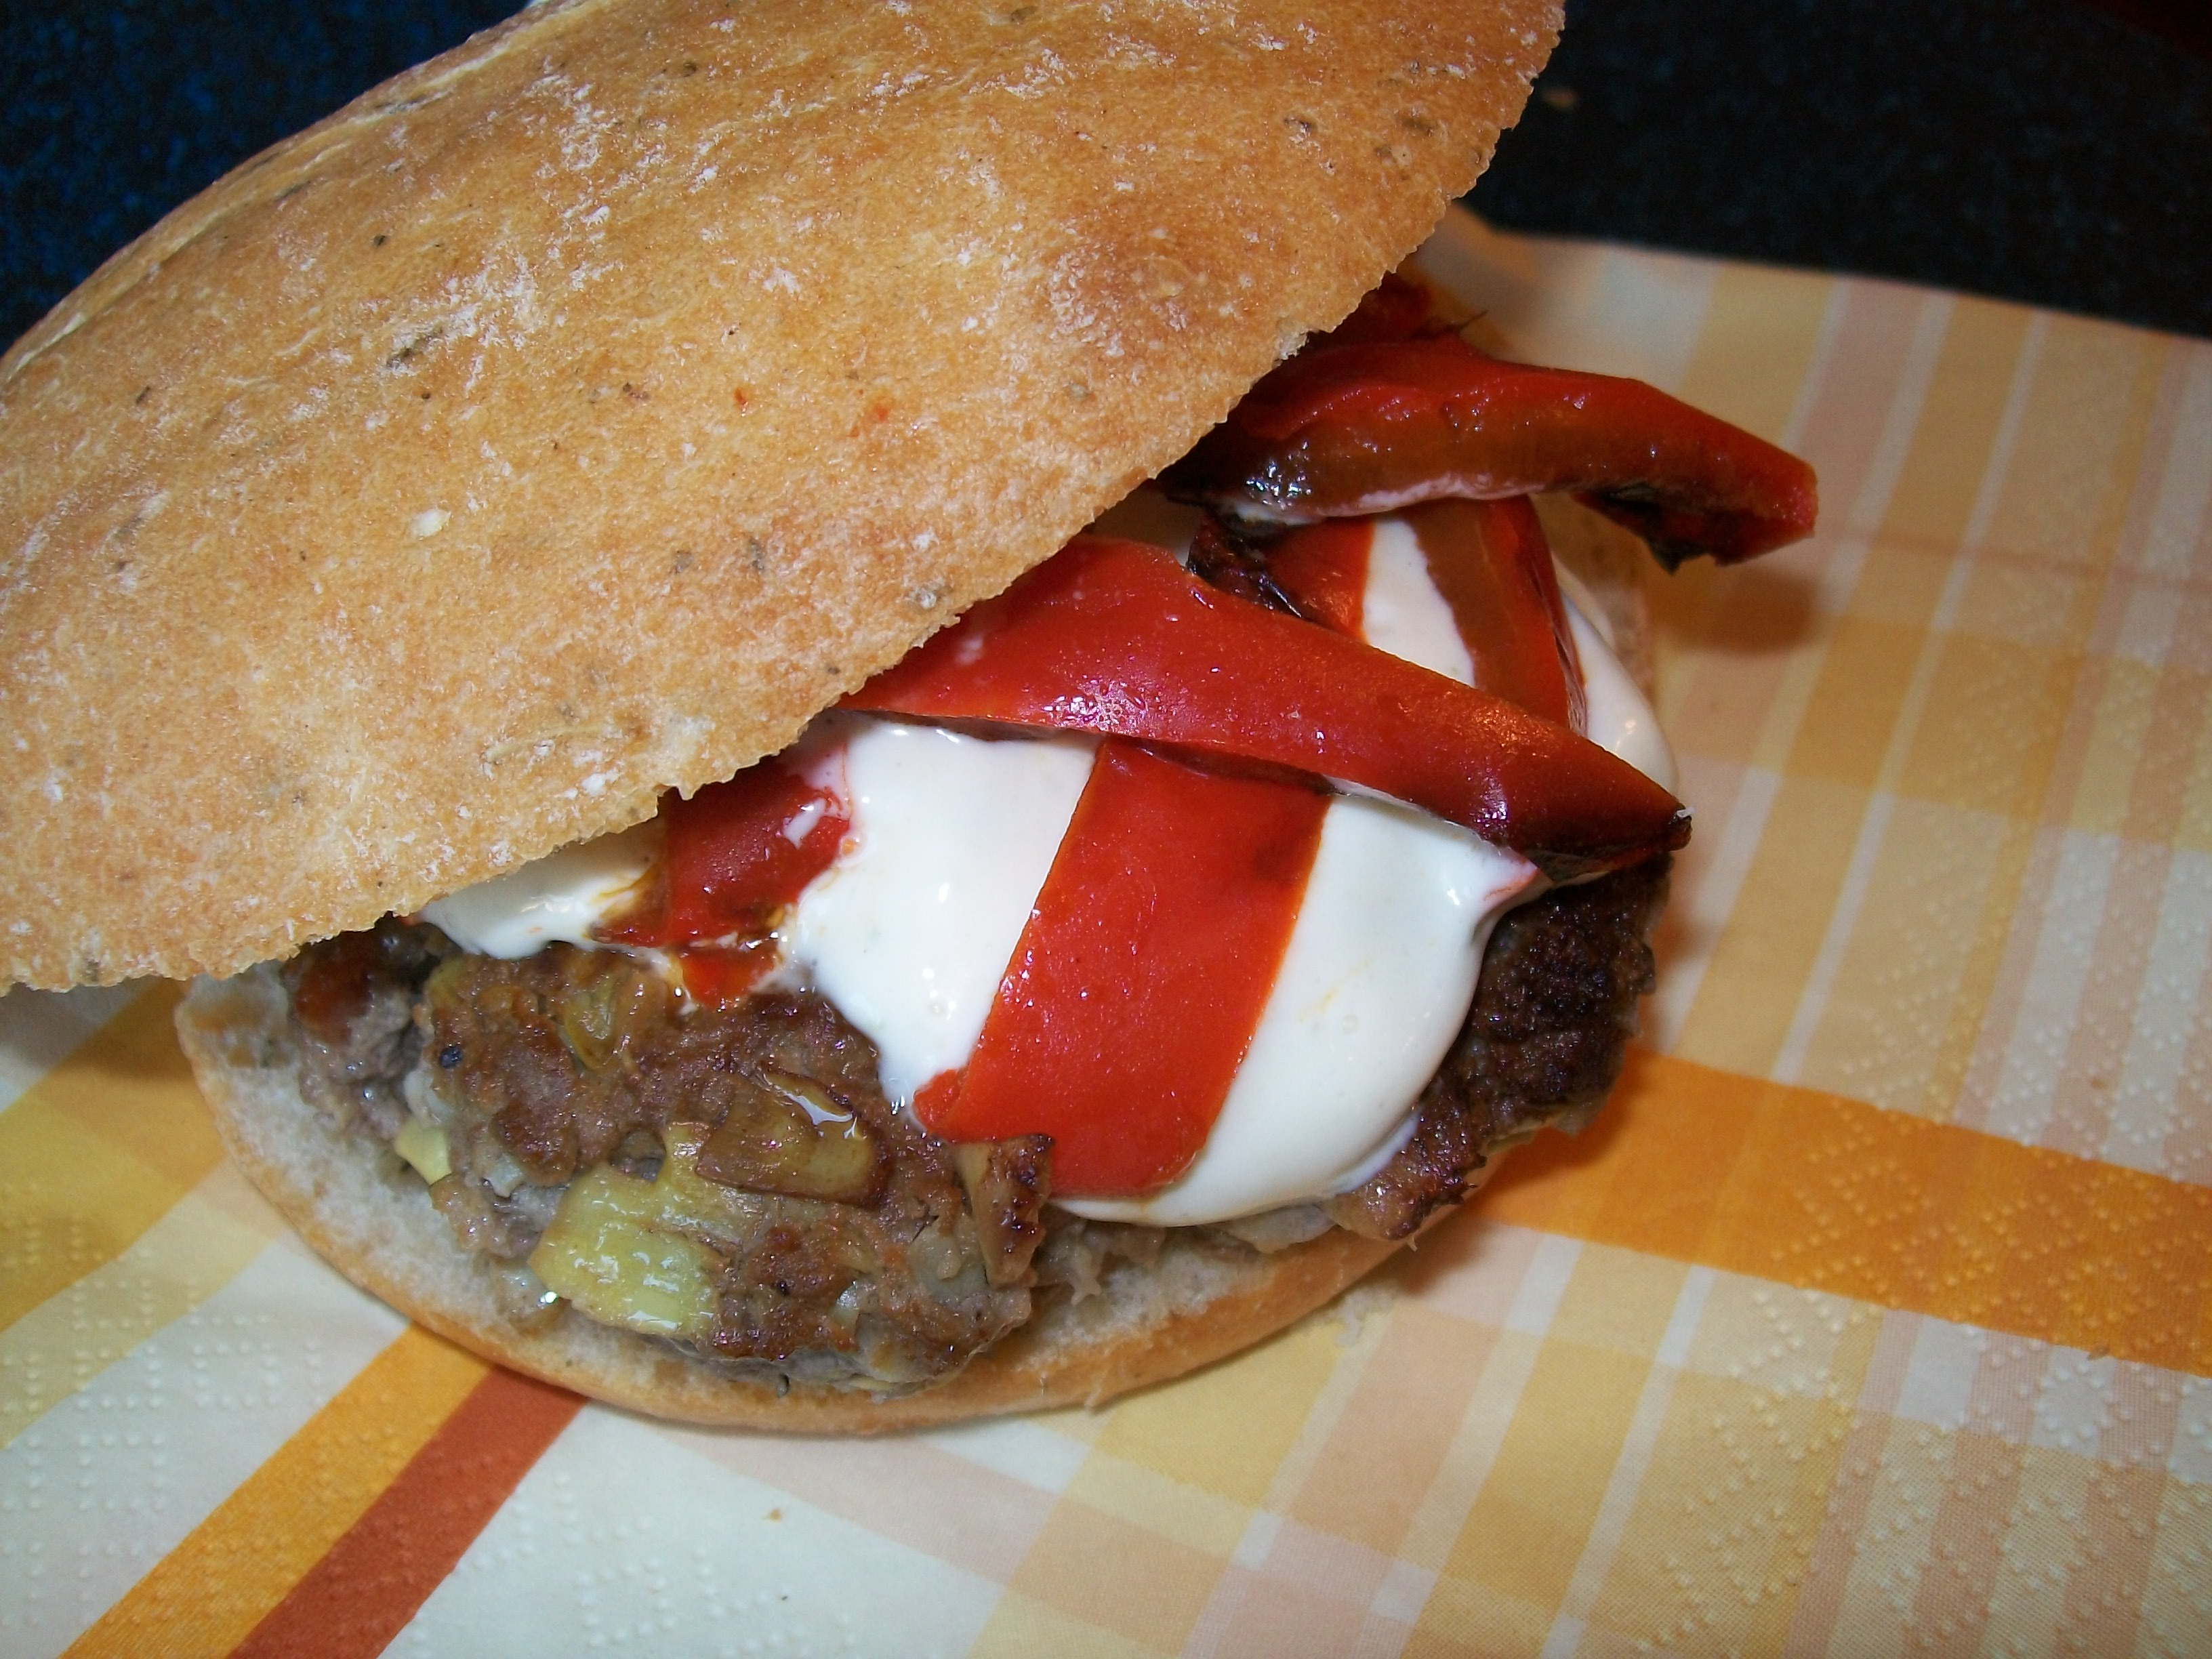 Artichoke & Parmesan Burgers with Lime Mayonnaise & Roasted Red Peppers